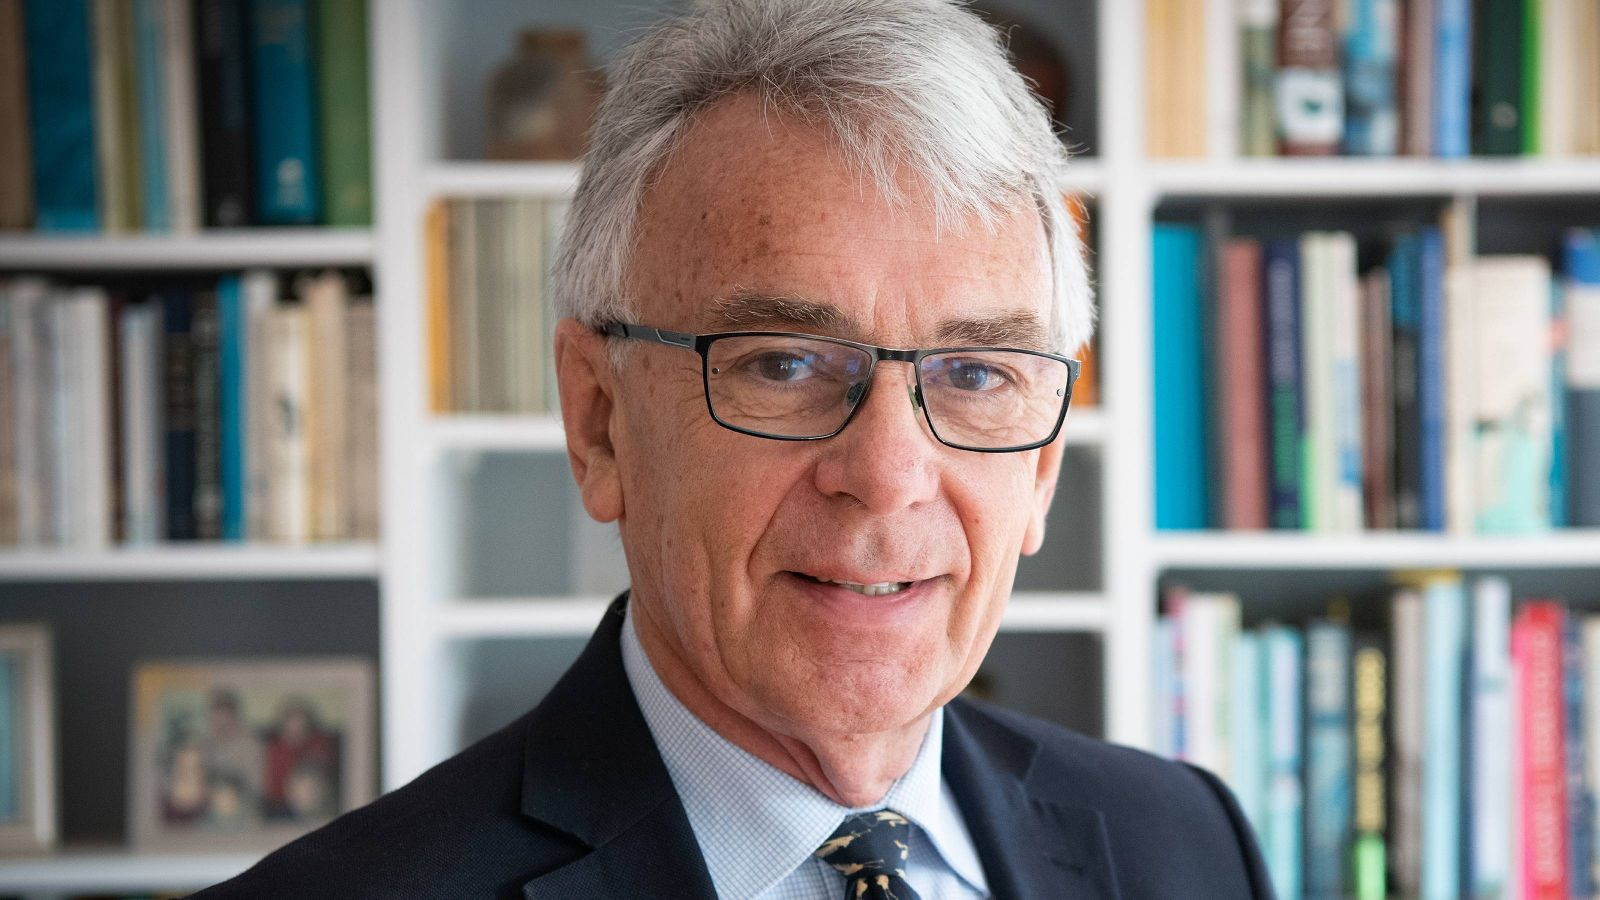 Portrait photo of distinguished alumnus Maarten Wevers in front of a bookcase.